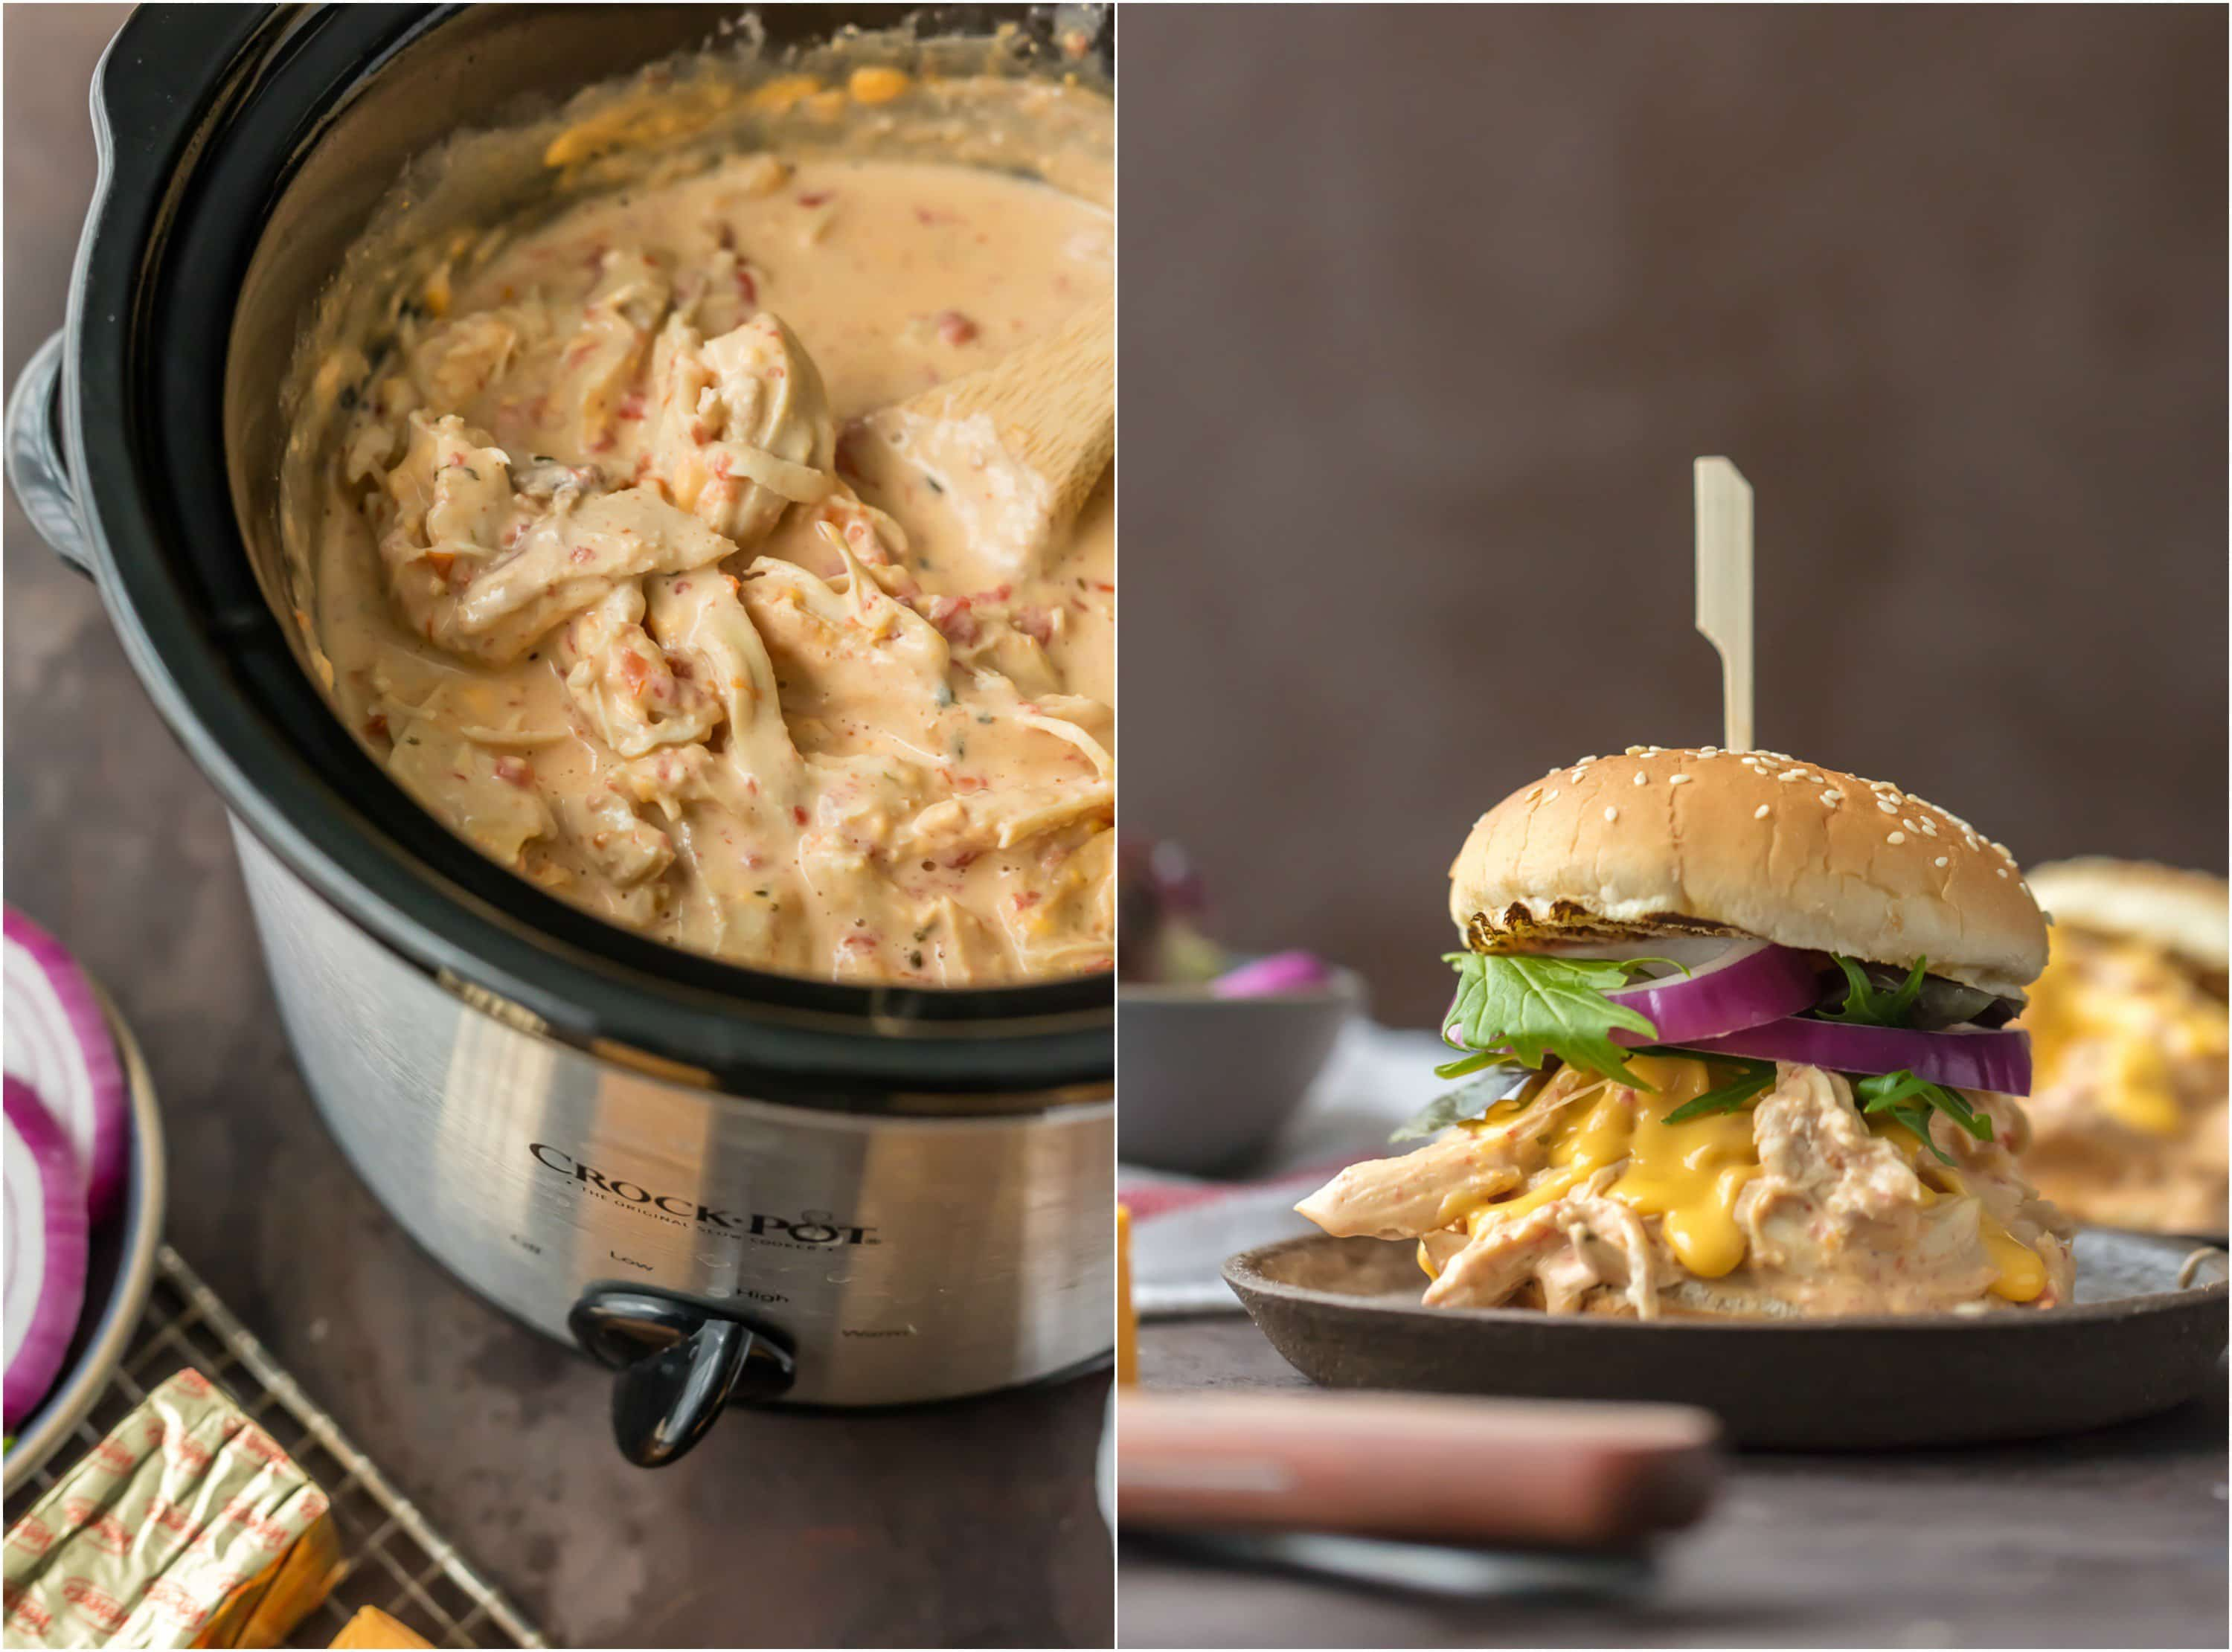 crockpot full of rotel dip chicken and sandwich with rotel dip chicken in it